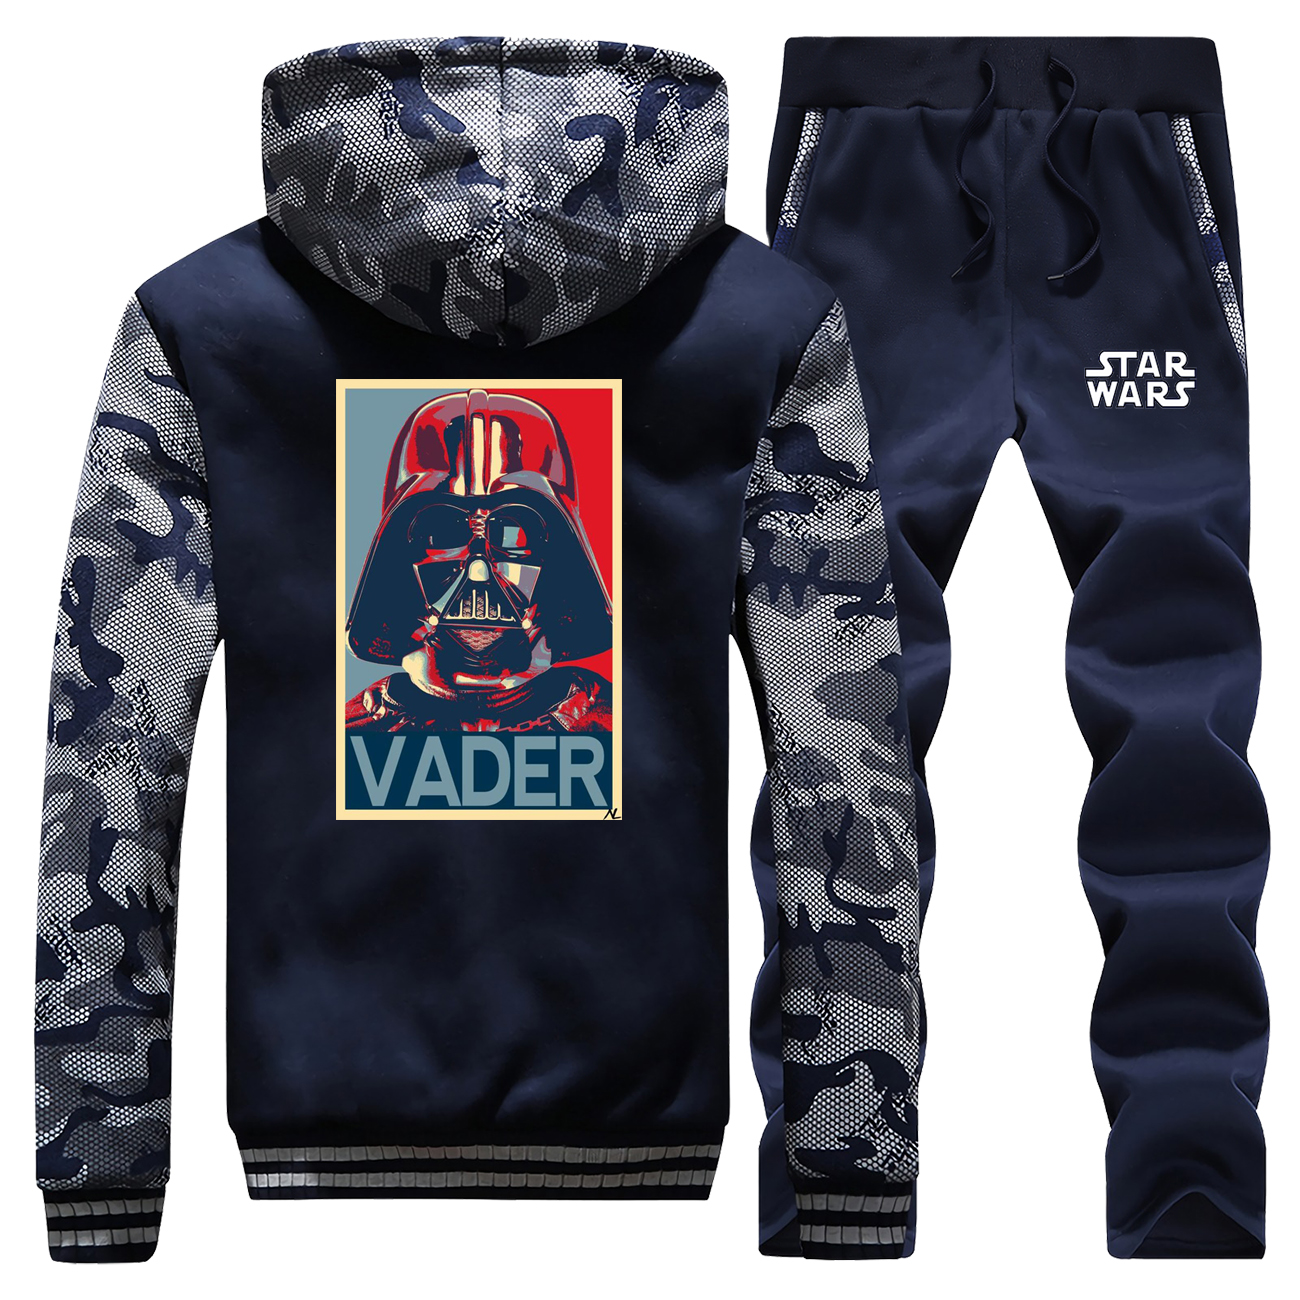 Darth Vader Star Wars Tracksuits Jacket Pant Set Men  Selfie Stormtrooper Sportsuits Sweatpant Sets Suit 2 PCS Coat Sportswear